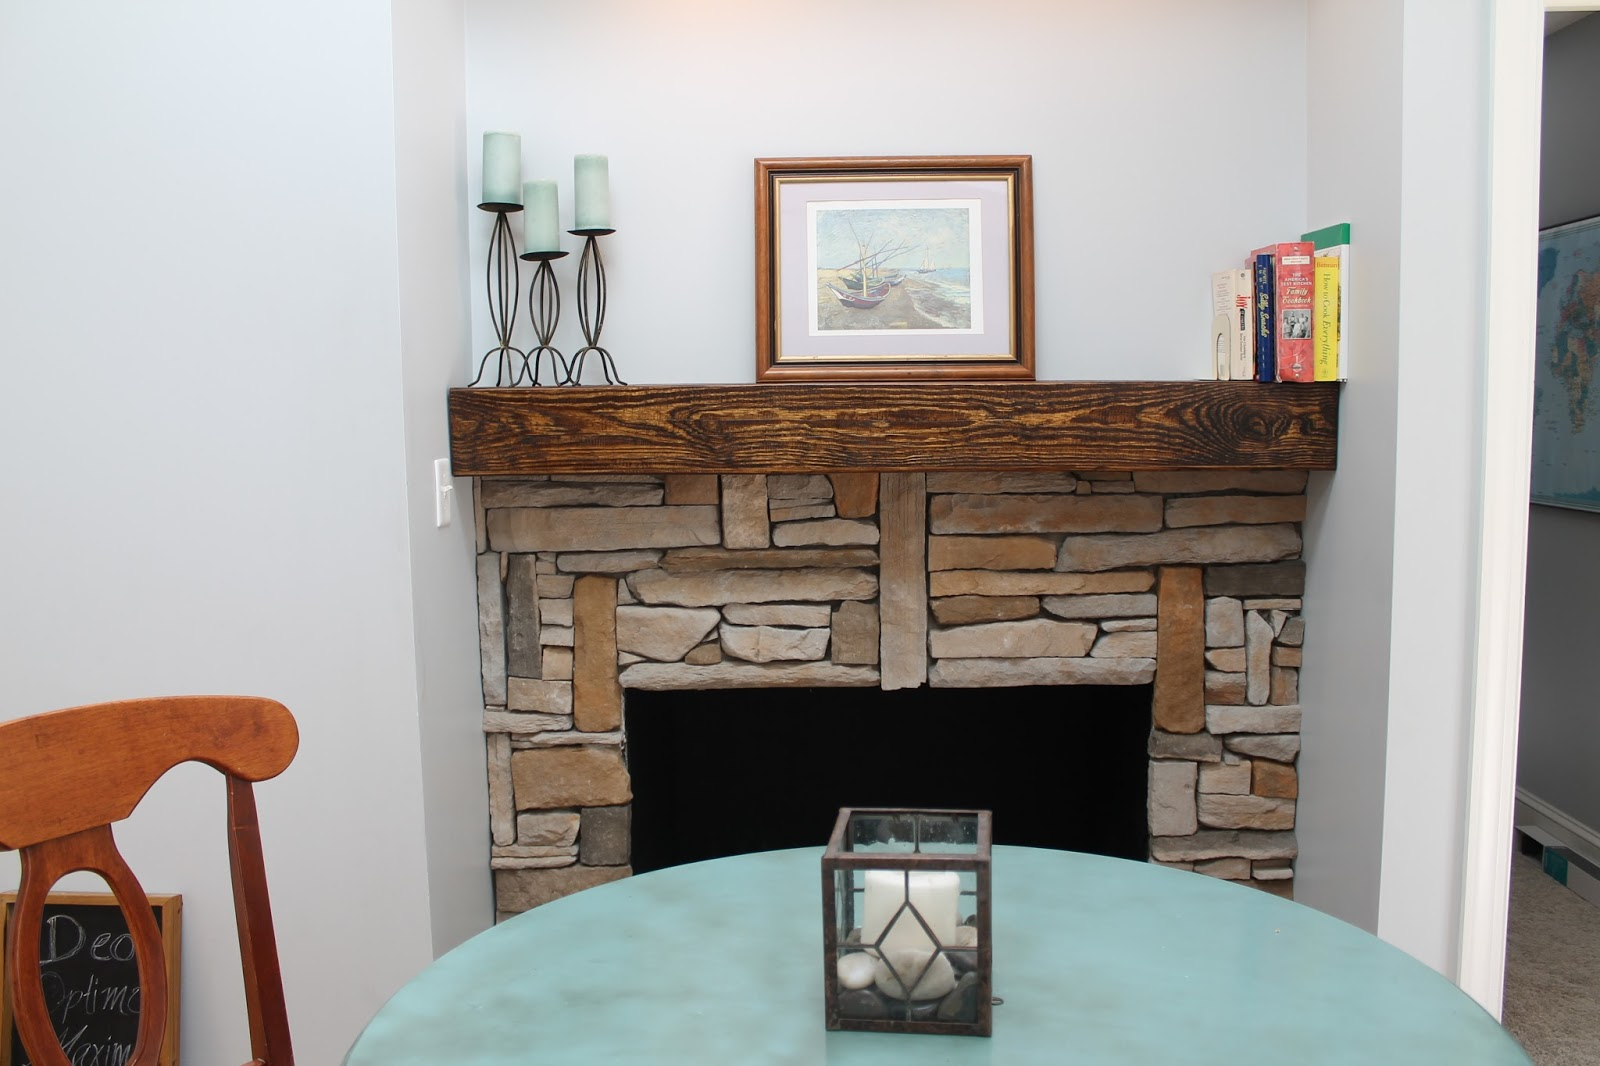 frankly journaling the journey fireplace renovations